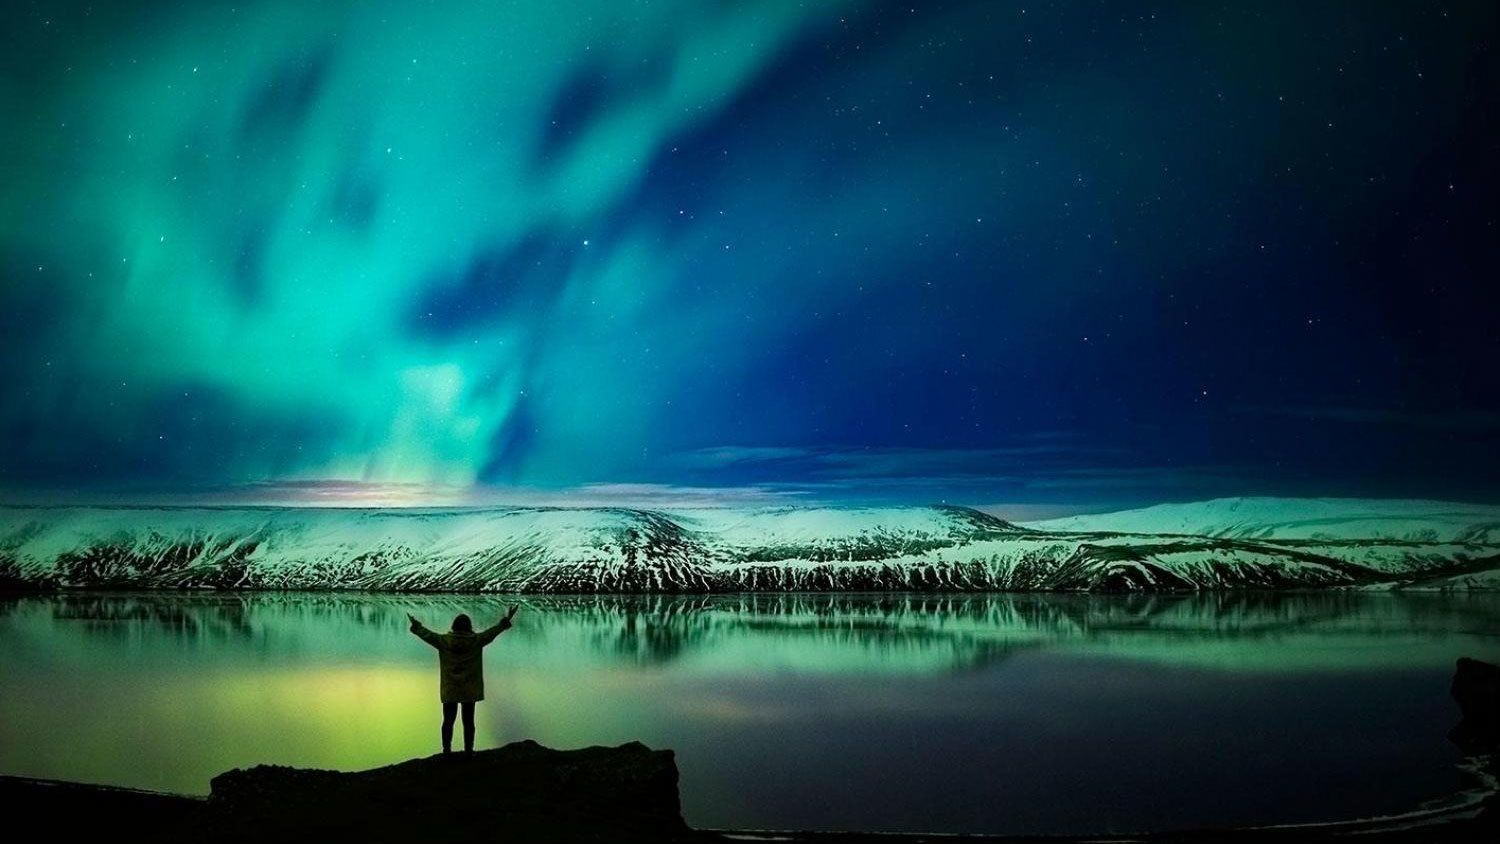 Woman with outstretched arms at edge of lake with Northern Lights above in Reykjavik